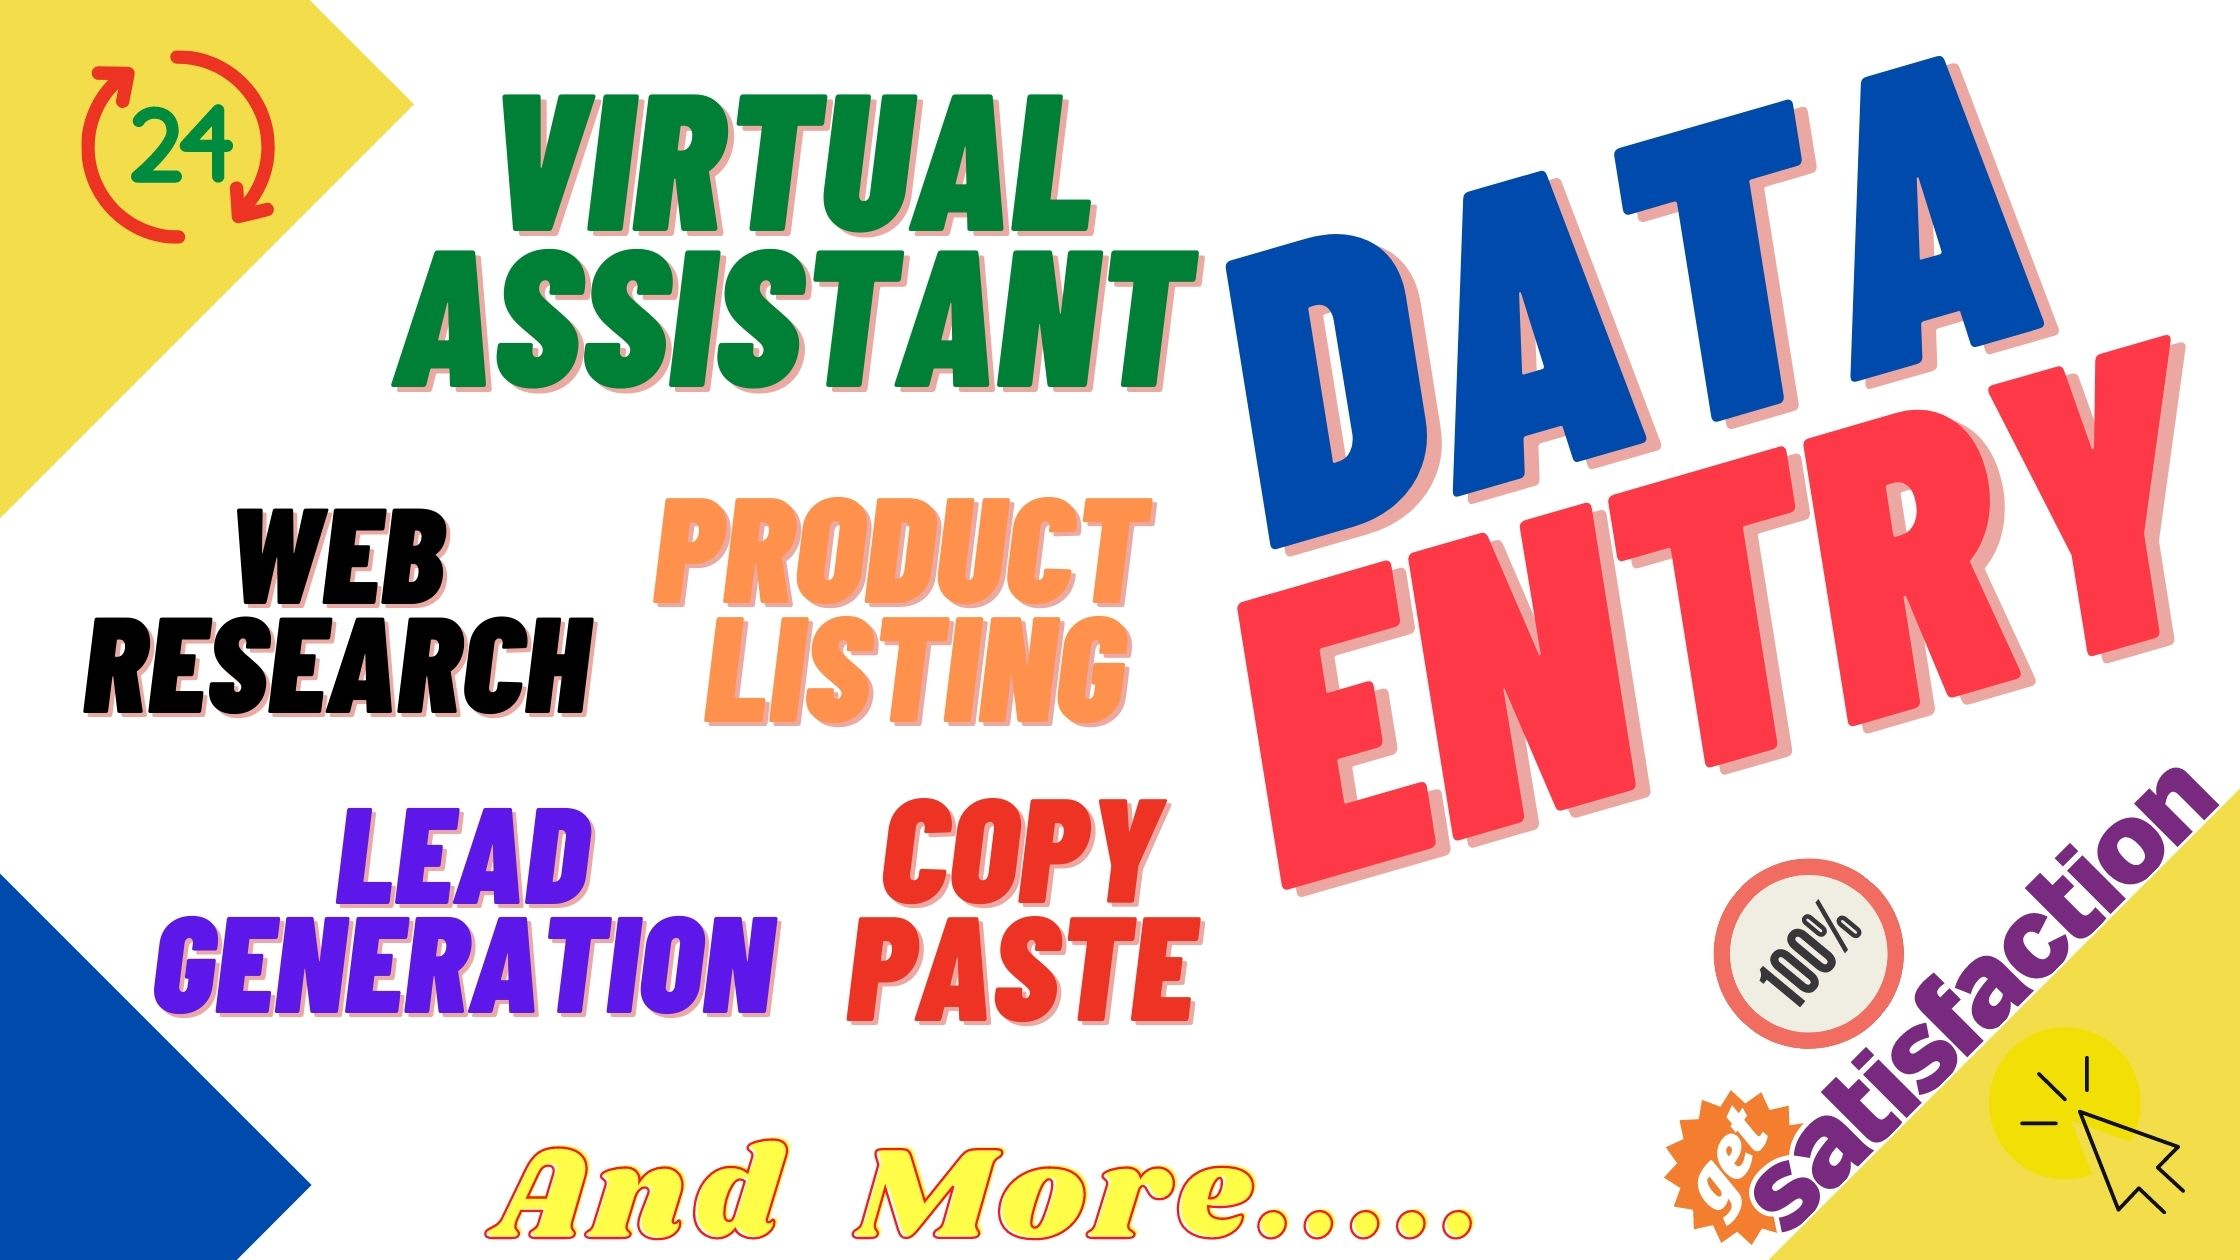 Data Entry,  Product Listing,  Copy and Paste,  Web Research,  Virtual Assistant Services in 24 Hrs